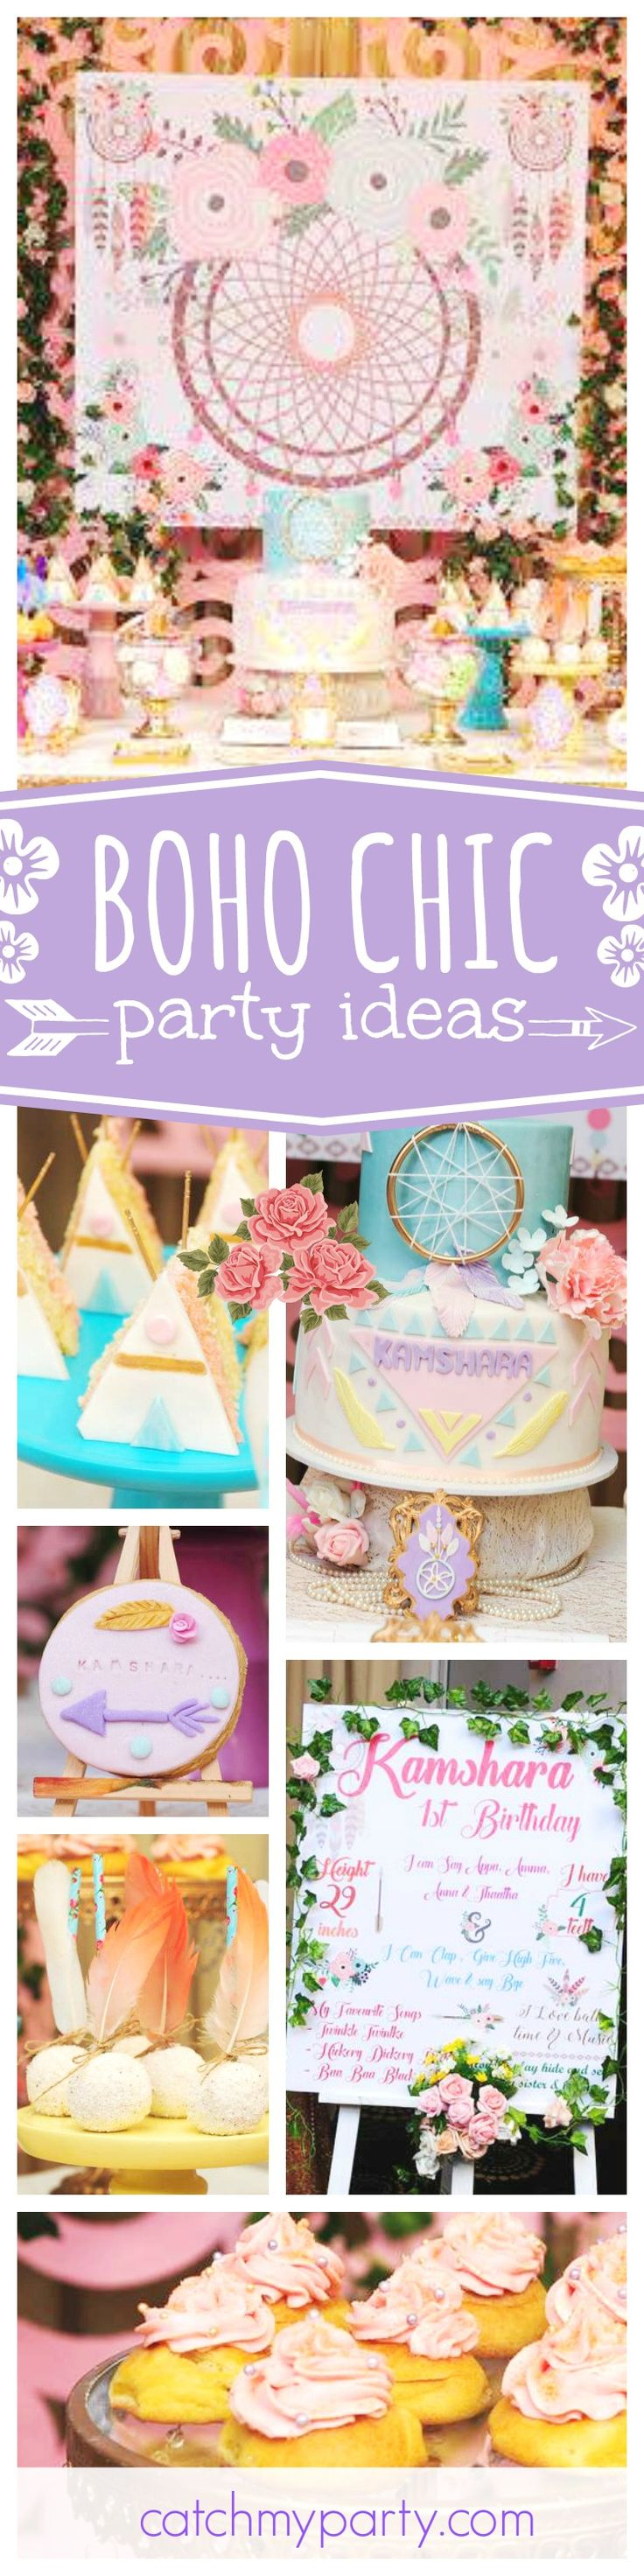 Check out this gorgeous Boho chic 1st birthday party! The cookies are amazing! See more party ideas and share yours at CatchMyParty.com